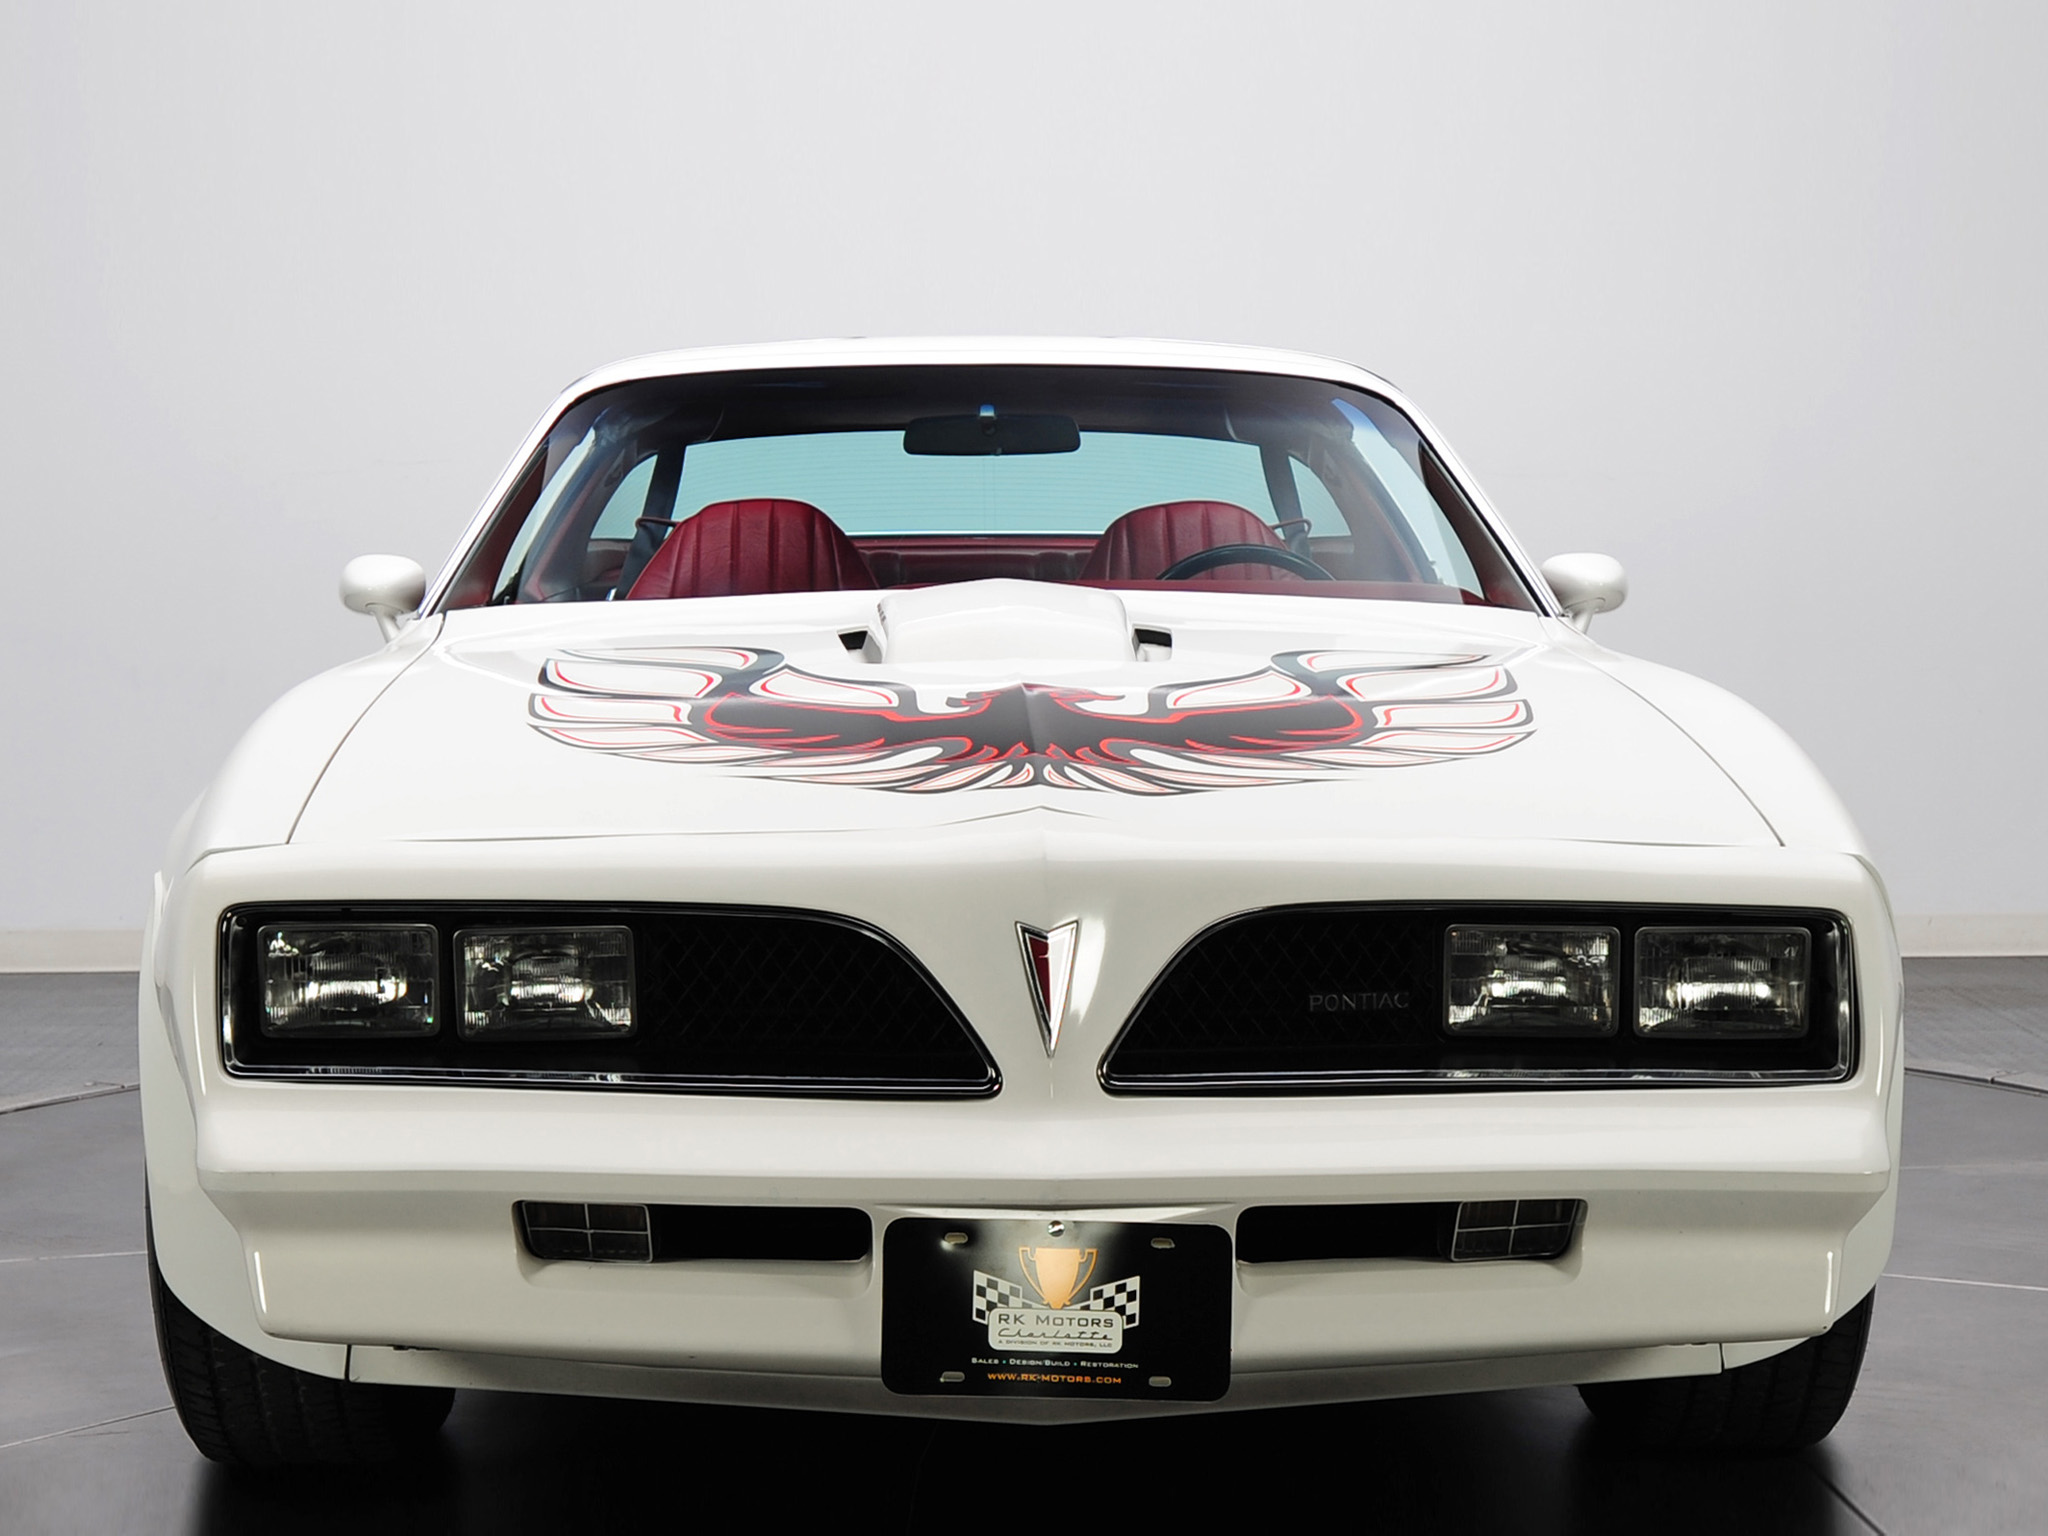 Pontiac Firebird photo 91672